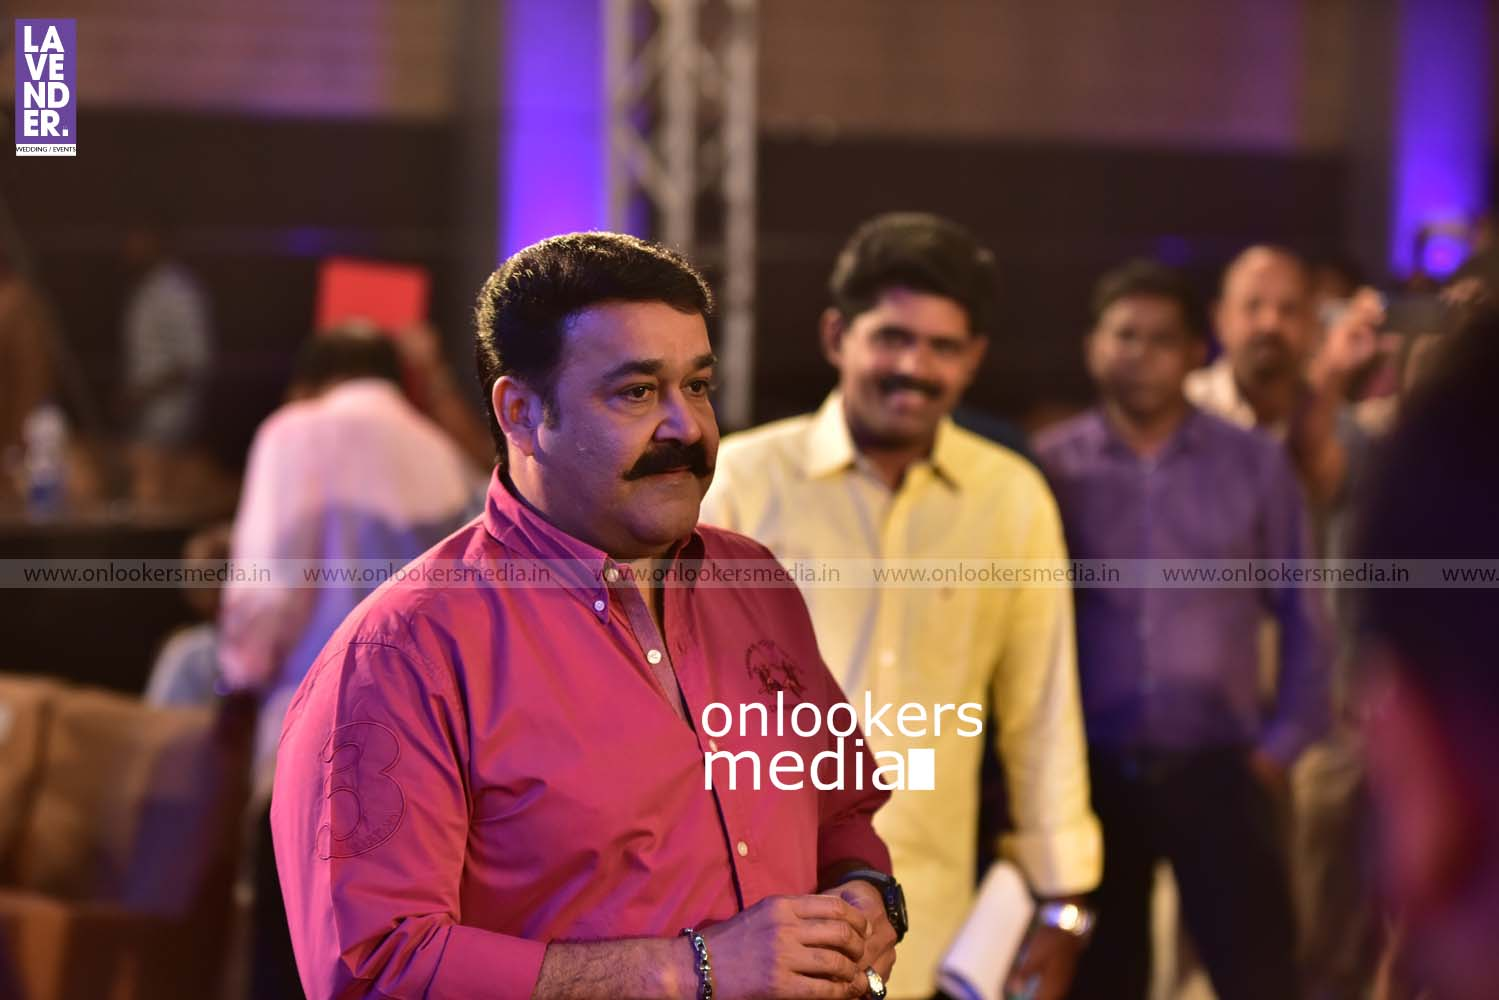 http://onlookersmedia.in/wp-content/uploads/2017/01/Oppam-100-Days-Celebration-Stills-Photos-6.jpg